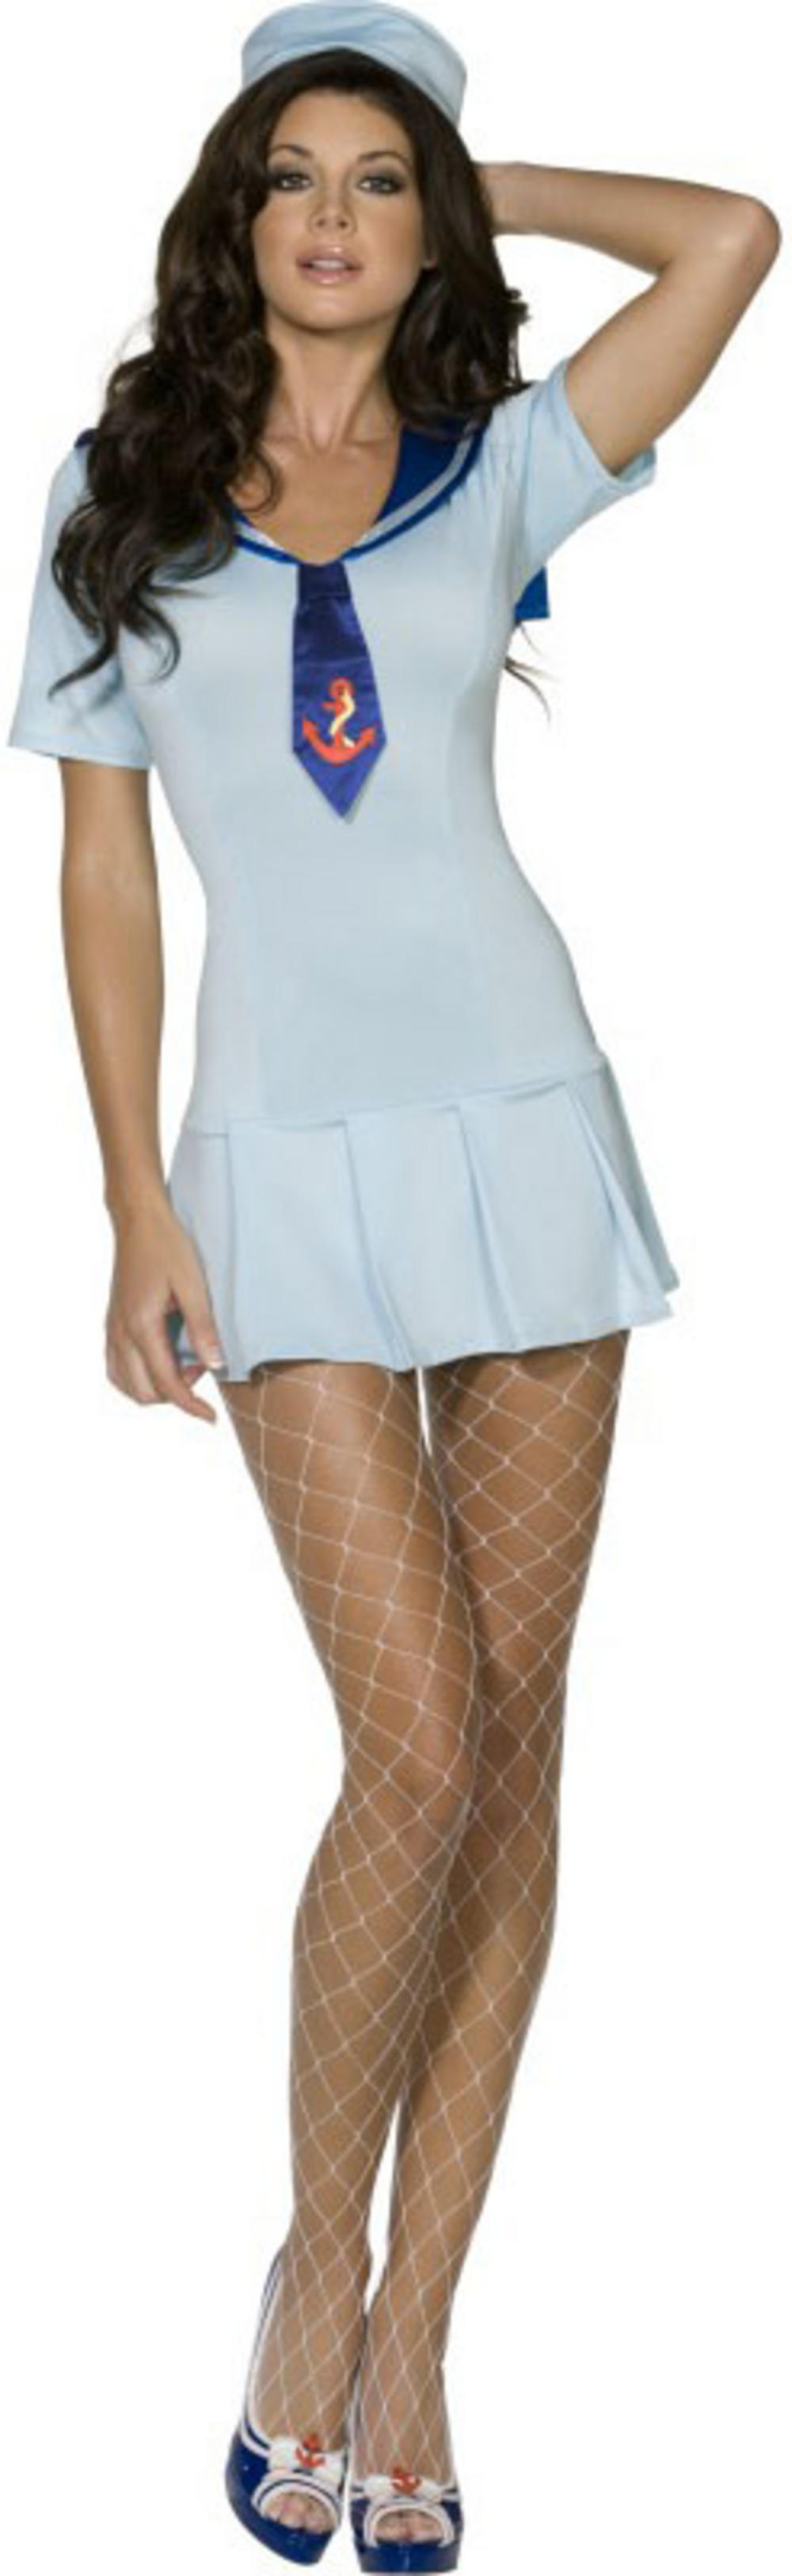 Sailor Shipmate Sweetie Costume